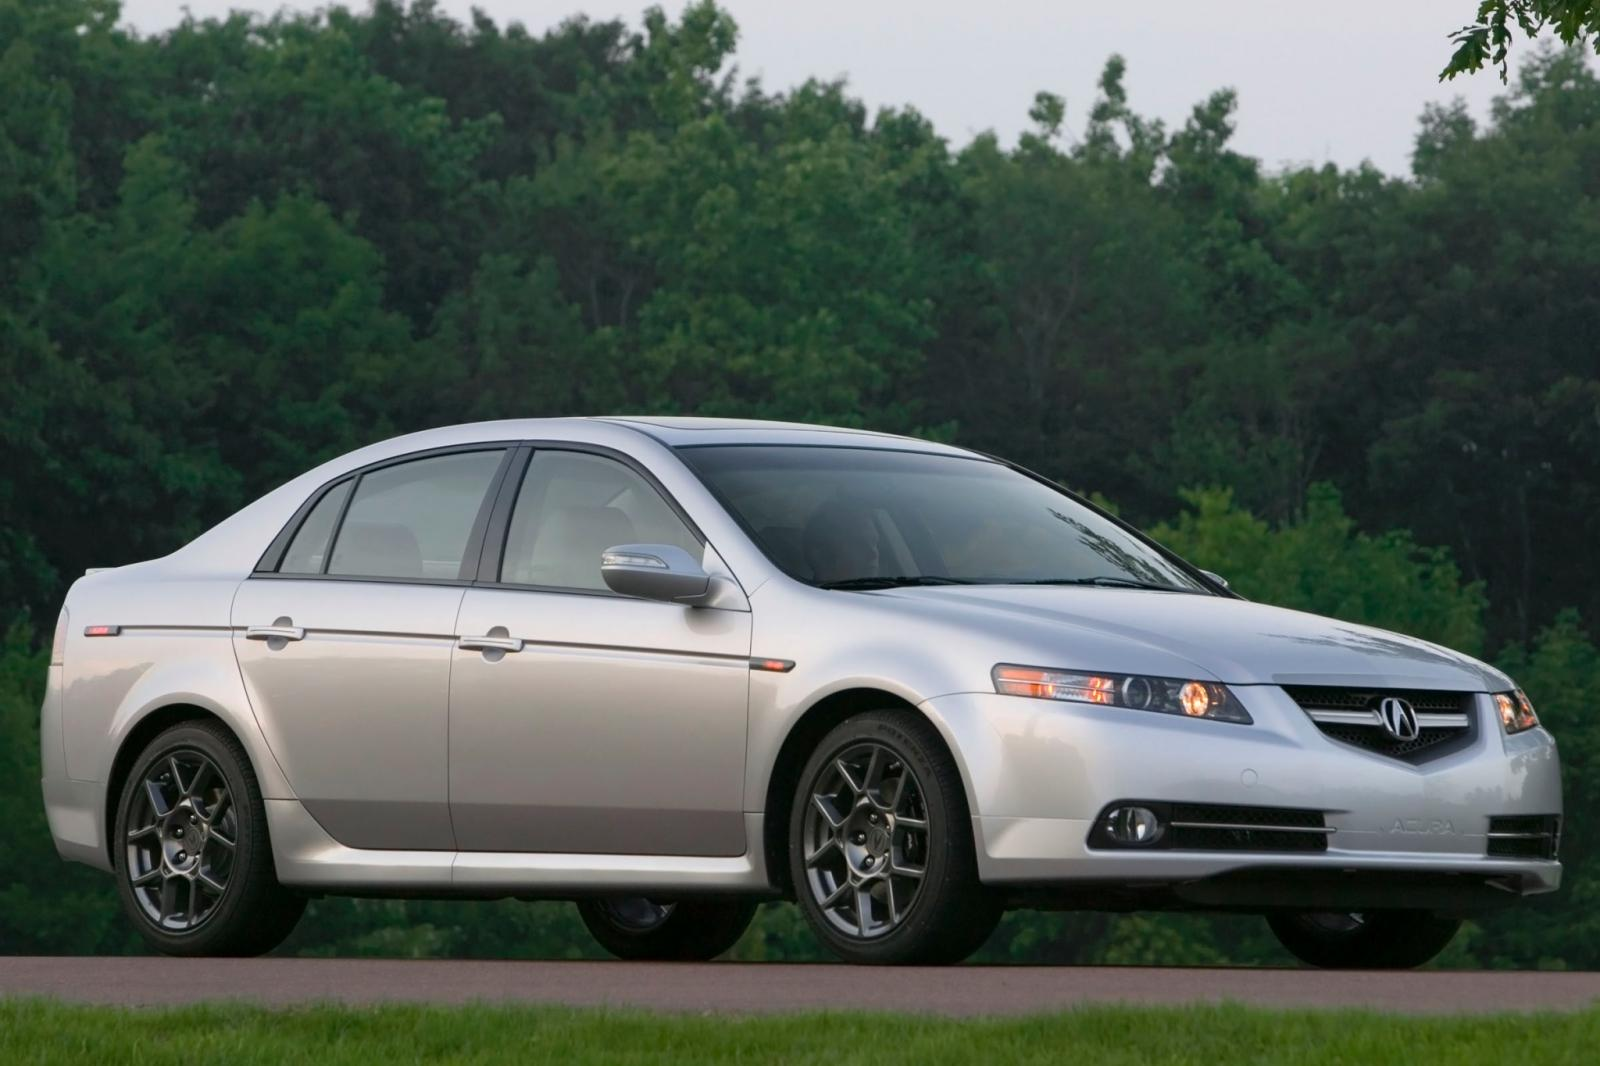 2007 acura tl information and photos zombiedrive. Black Bedroom Furniture Sets. Home Design Ideas